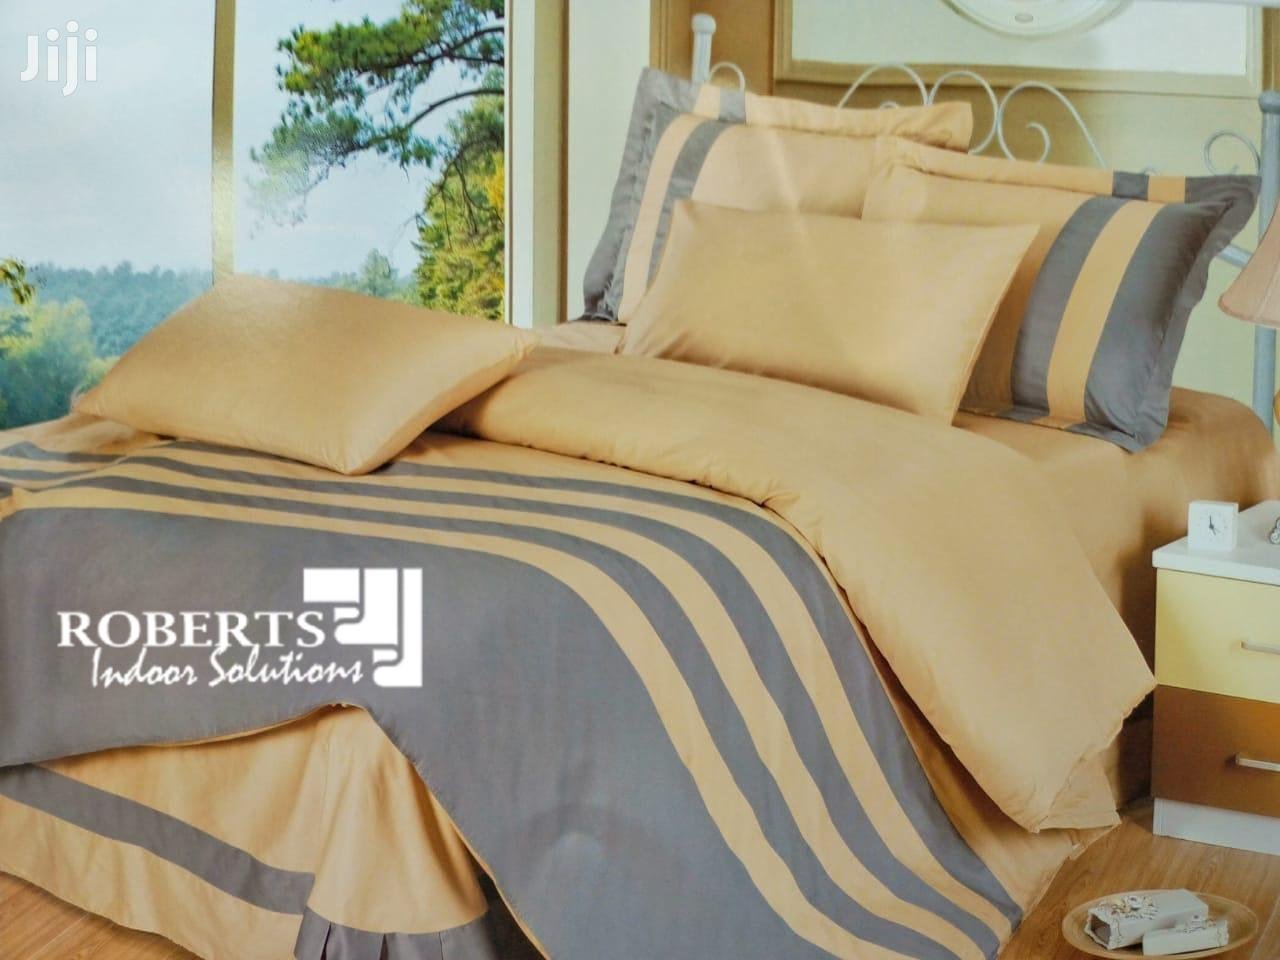 Cream And Grey Duvet Cover 6by6 In Nairobi Central Home Accessories Curtains Kenya Jiji Co Ke